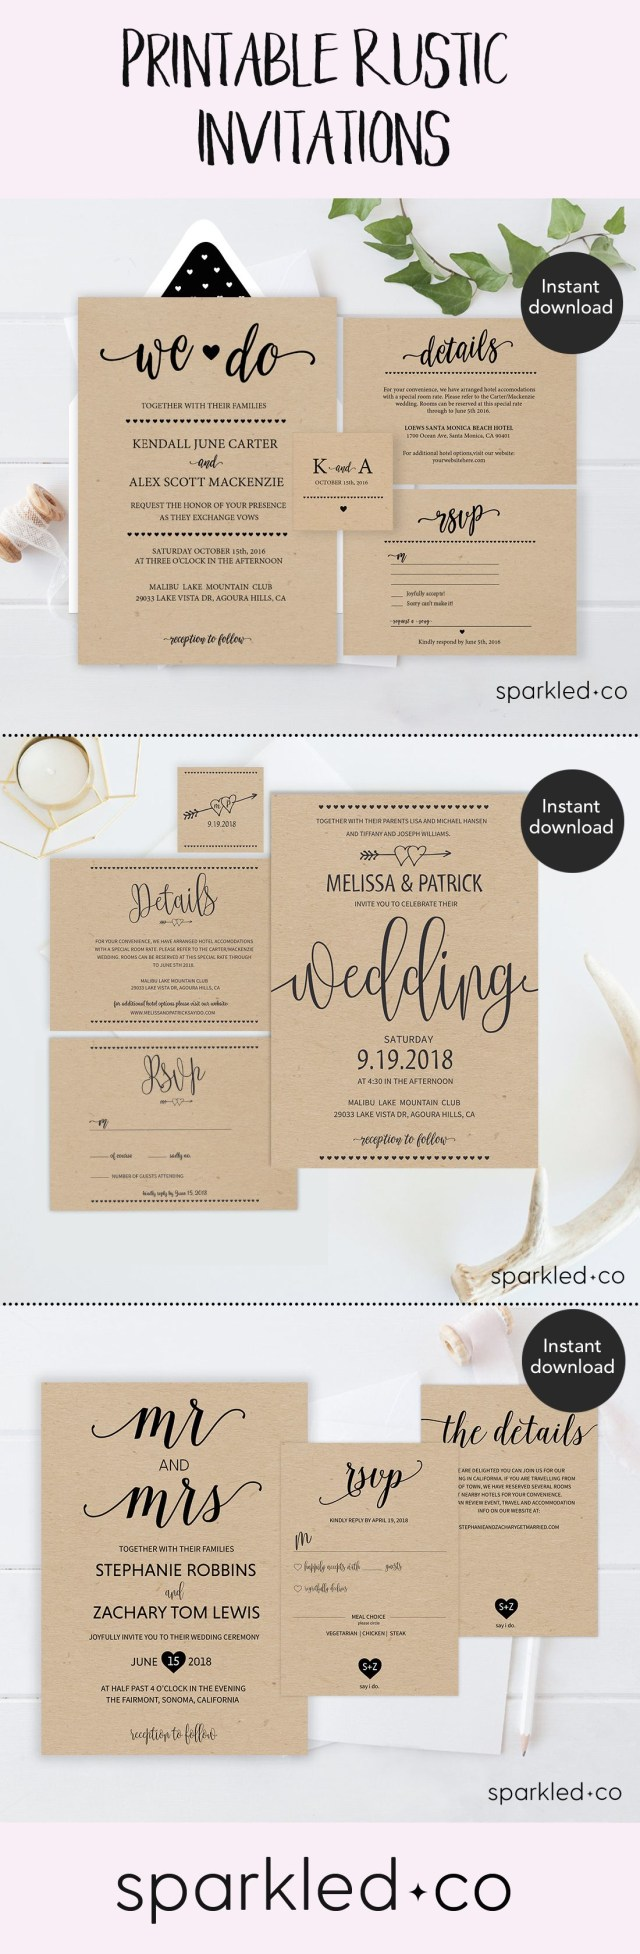 Cheap Invitations Wedding Rustic Wedding Invitation Template Wedding Invitation Templates